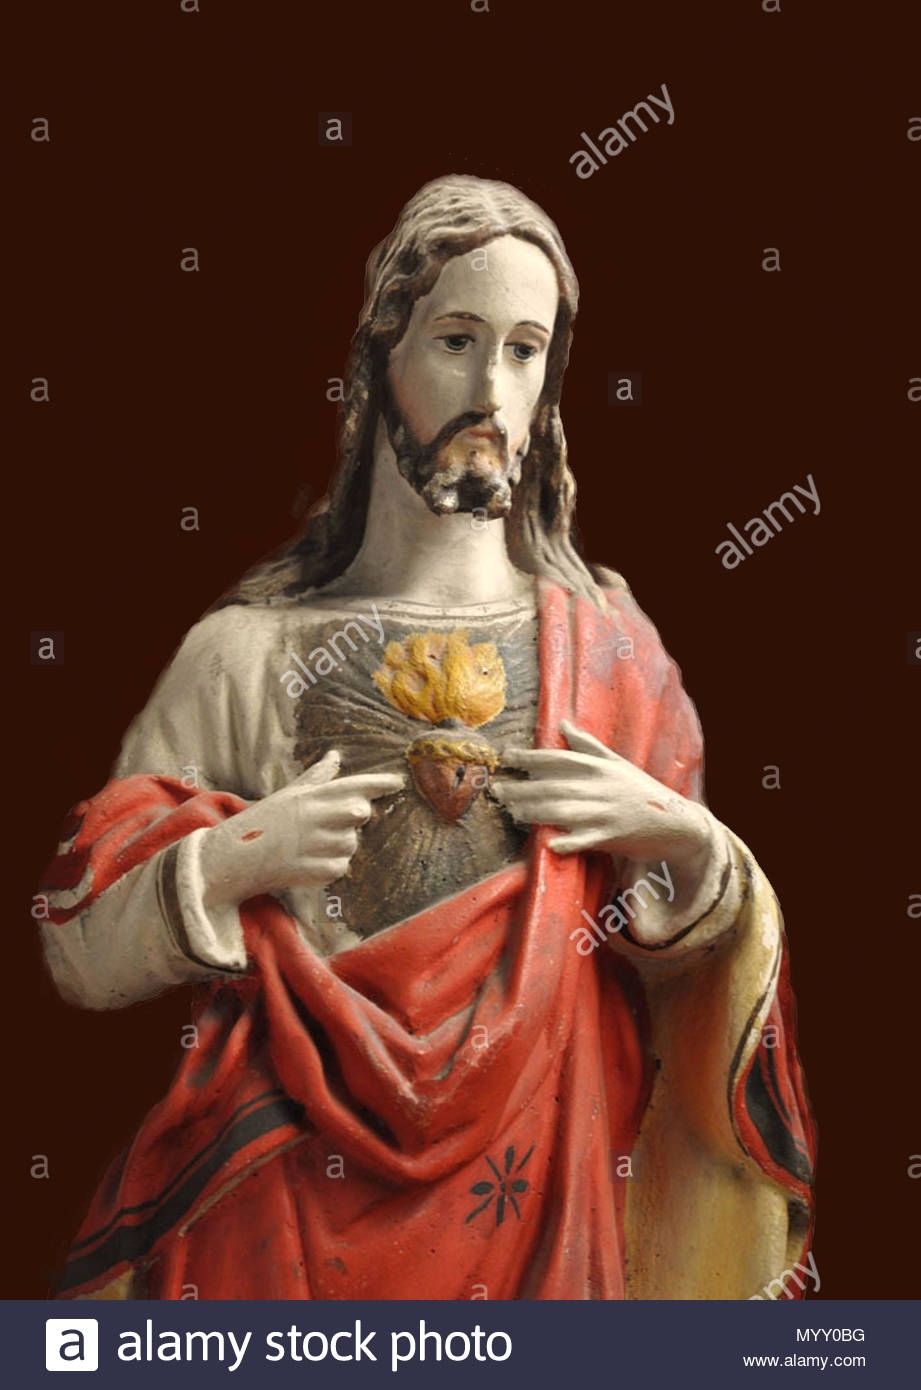 christ saint figure - Stock Image